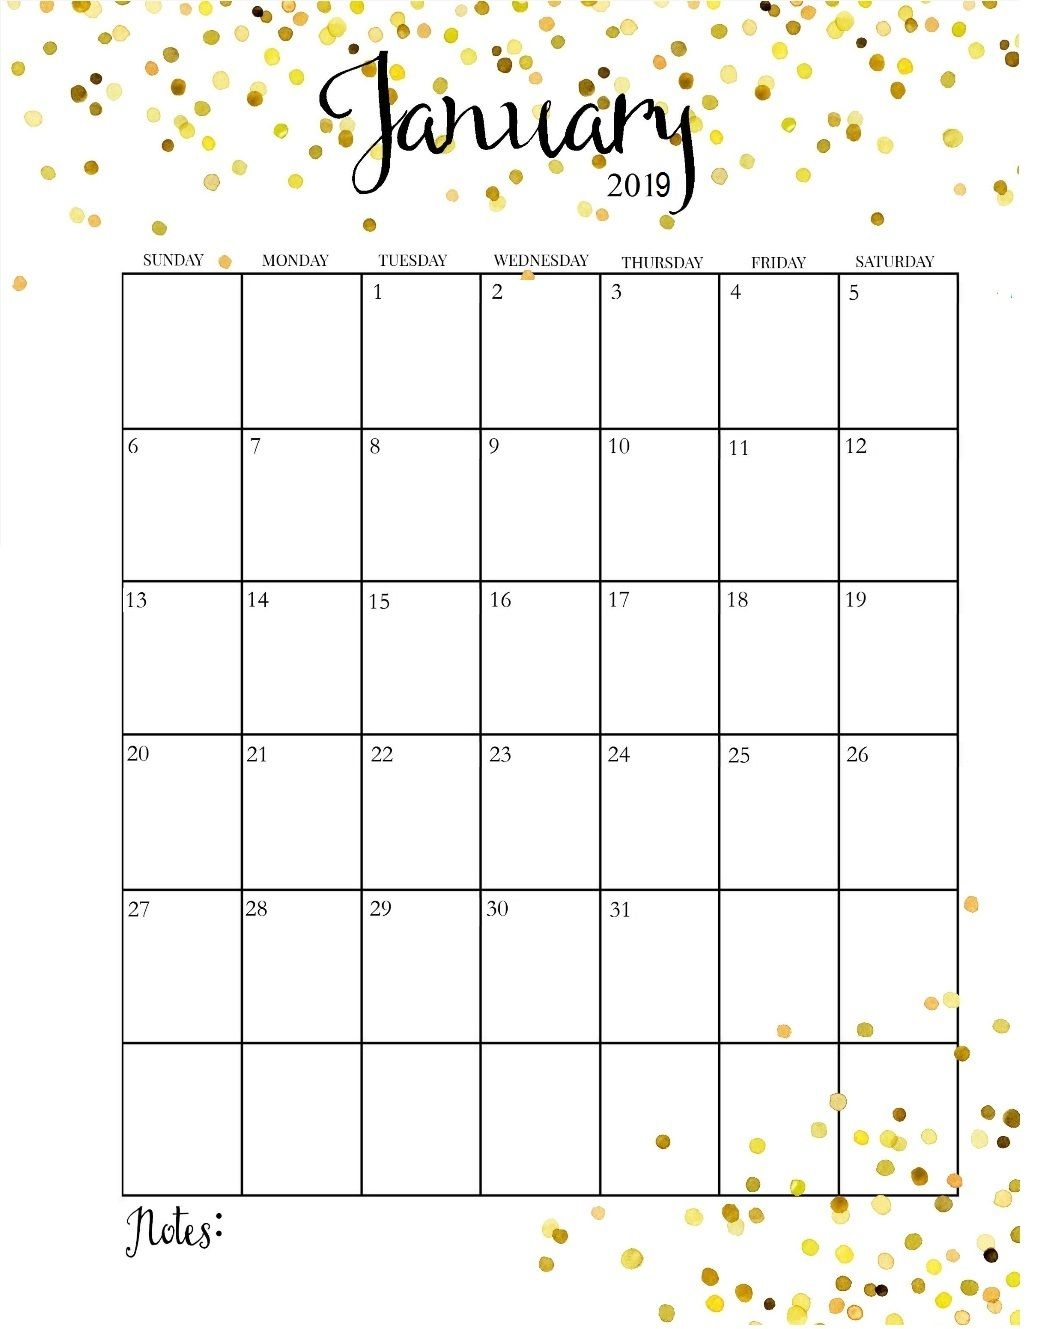 cute january 2019 calendar calender pinterest january::January 2019 iPhone Calendar